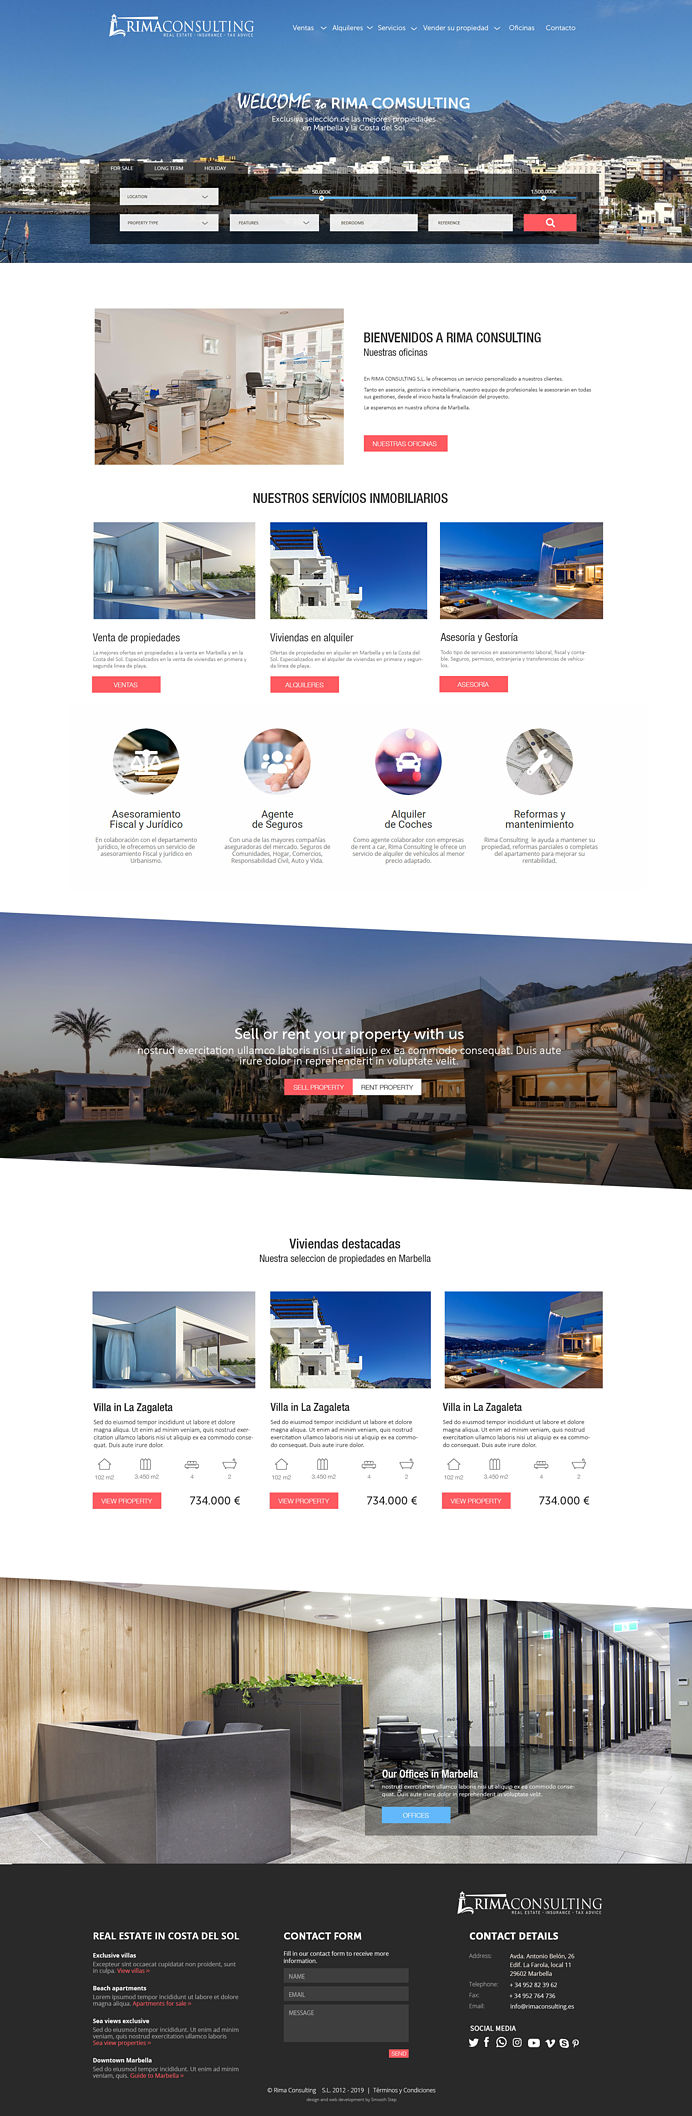 Rima real estate website design and property engine upgrade